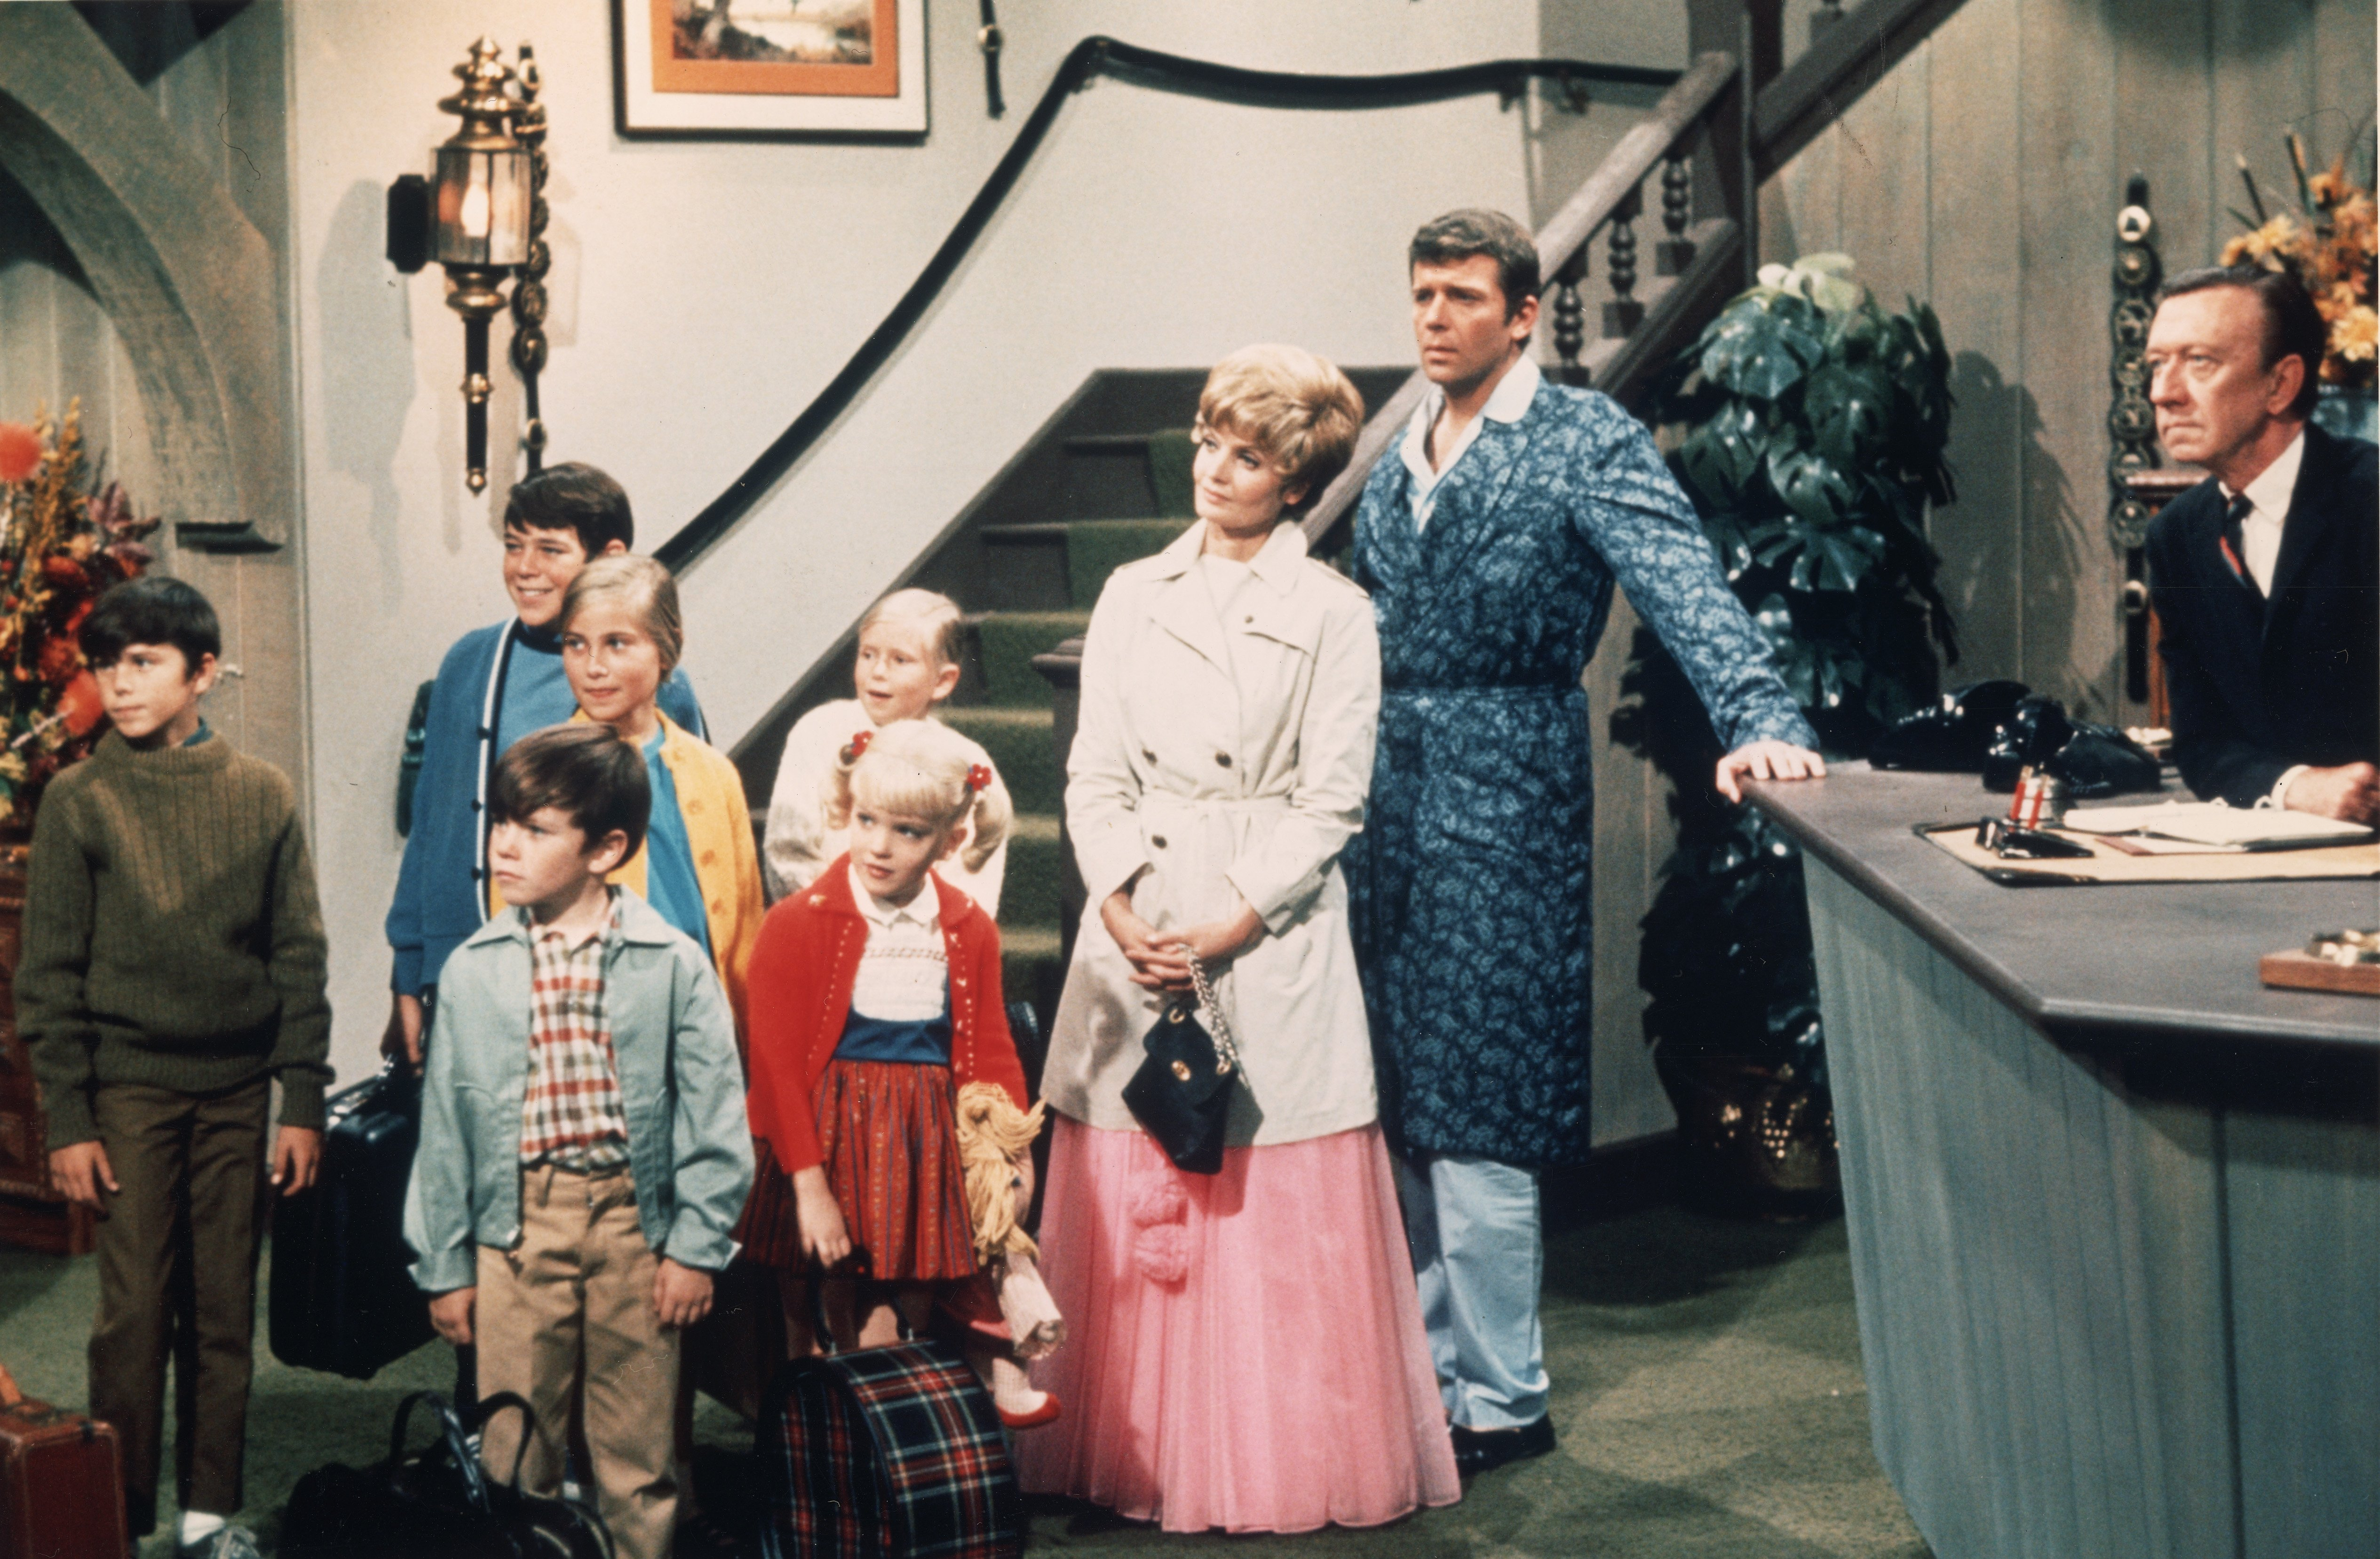 """""""The Brady Bunch's"""" Robert Reed and Florence Henderson stand with Christopher Knight, Barry Williams, Mike Lookinland, Maureen McCormick, Eve Plumb, Susan Olsen, Henderson, Reed in a hotel lobby, circa 1969   Photo: Getty Images"""